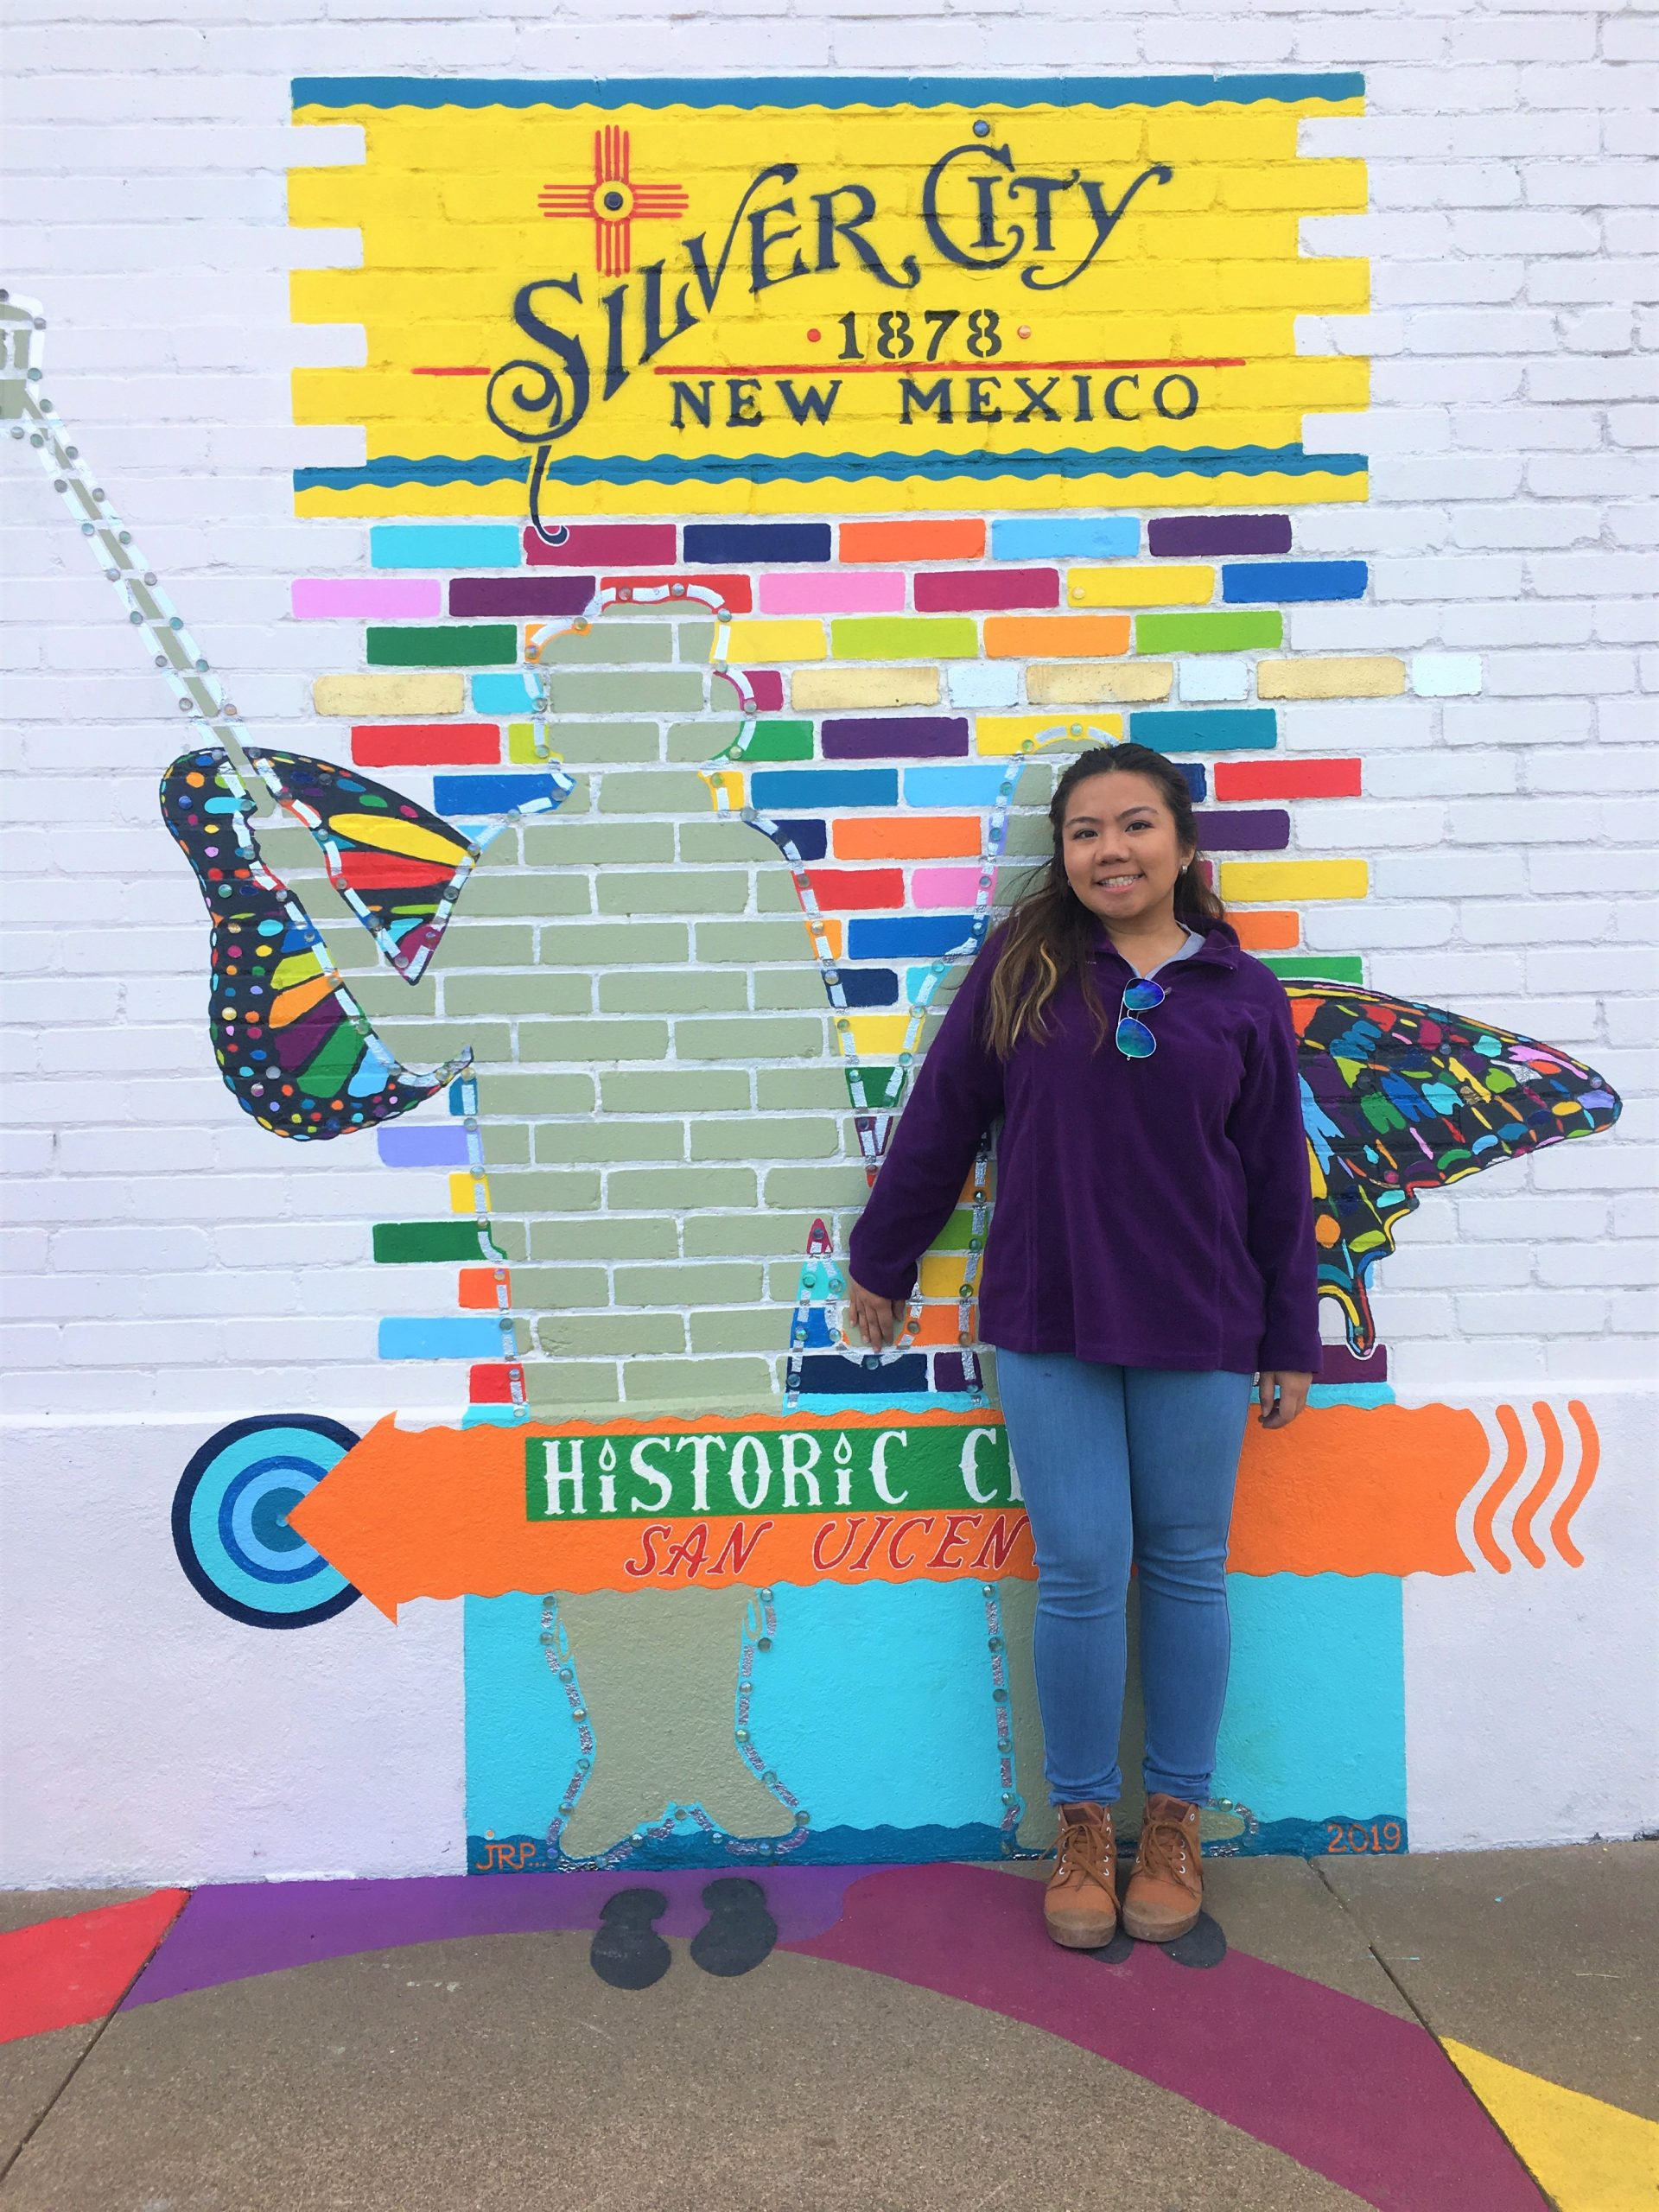 4 Cool Things To Do in Silver City, New Mexico